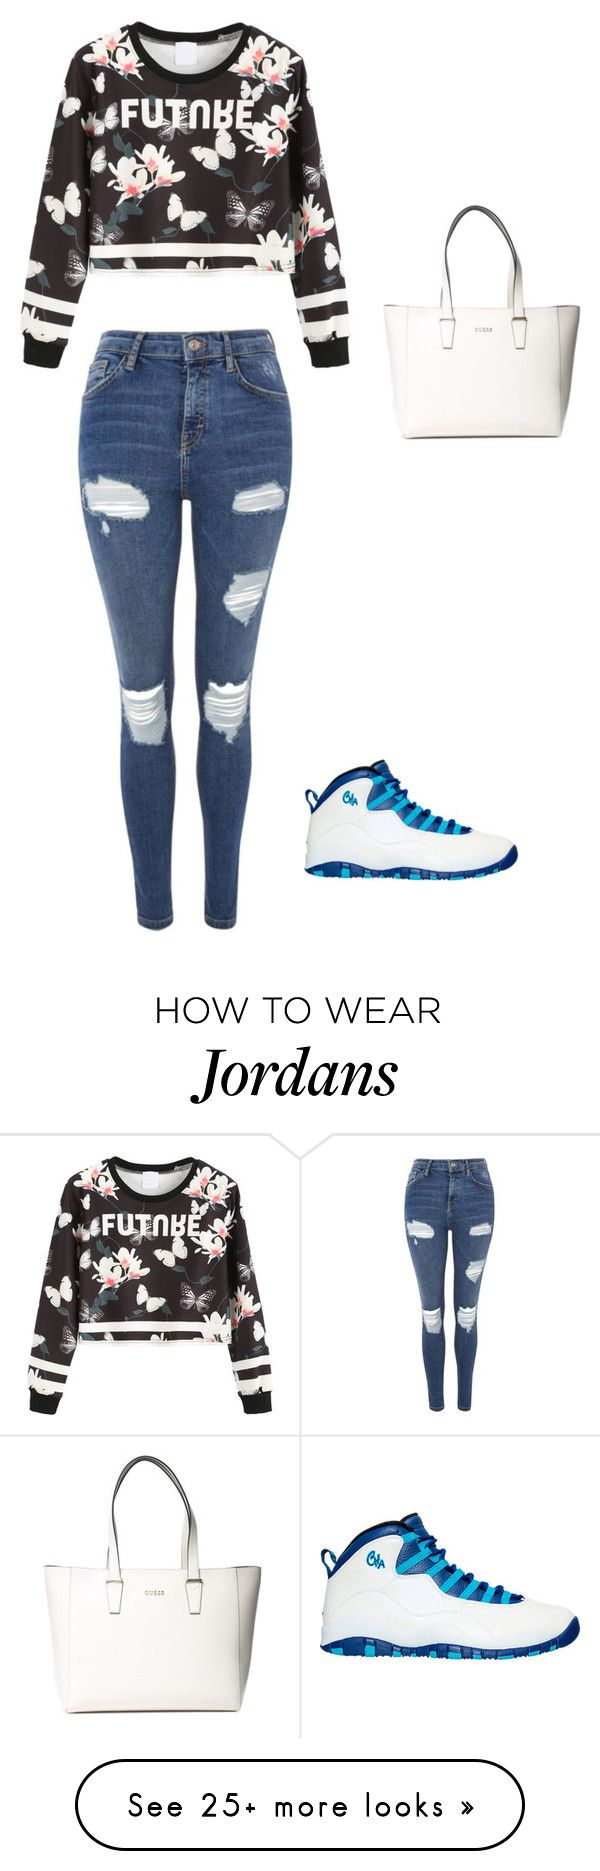 """slayyyyyyy"" by mariska200413693 on Polyvore featuring WithChic, NIKE, Topshop and GUESS"